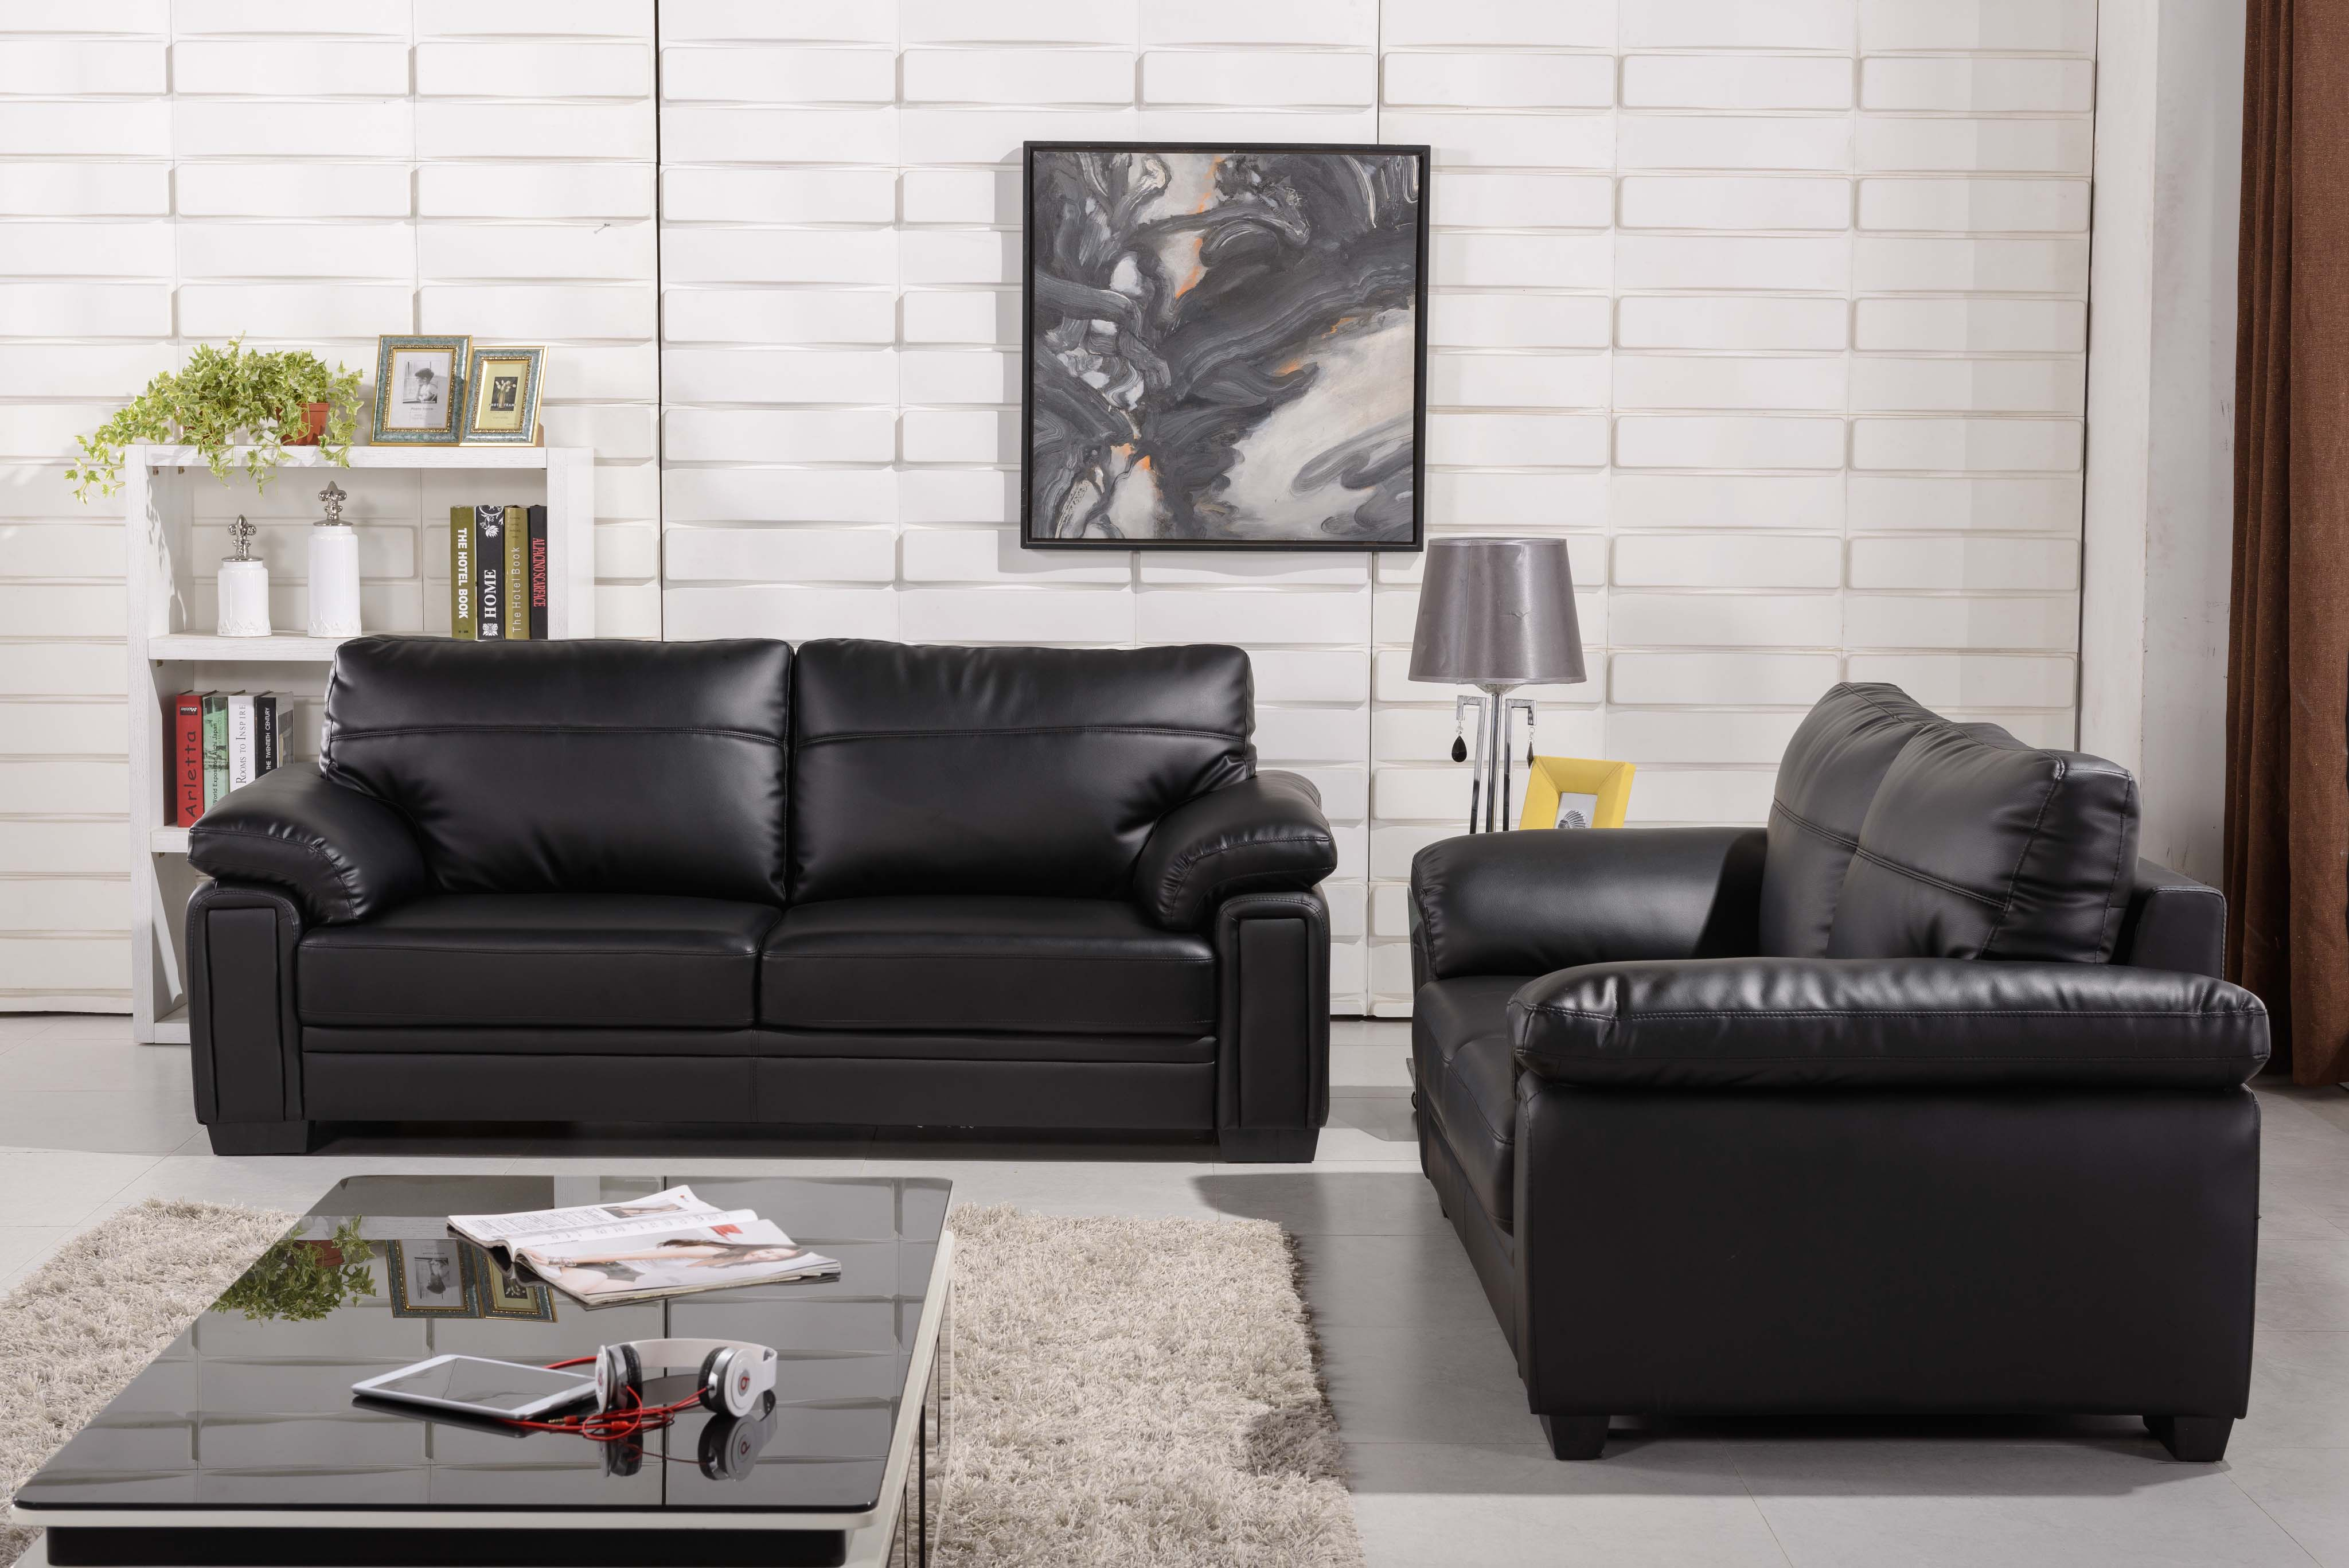 Perfect Deep Set Couch 56 With Additional Modern Sofa Ideas with Deep Set Couch